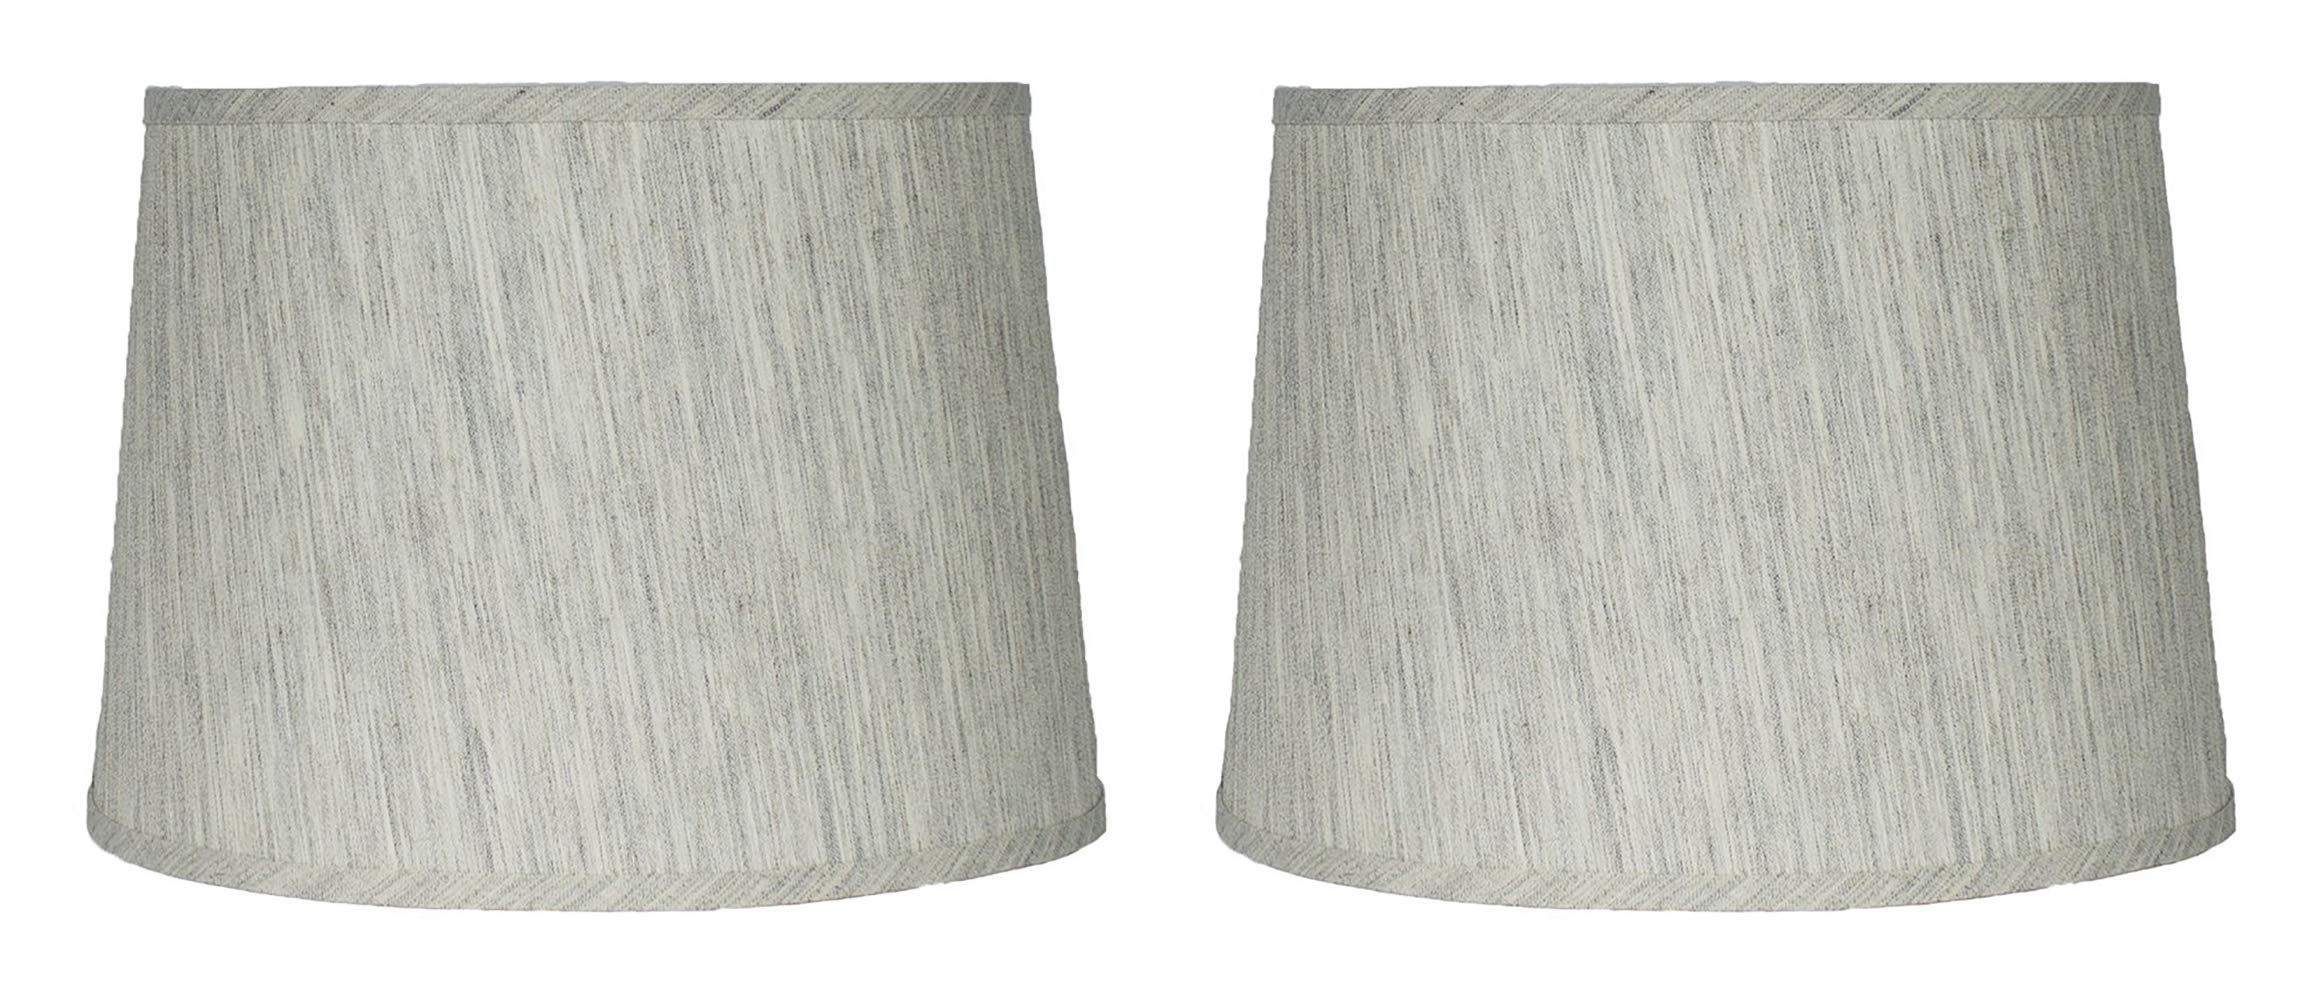 Urbanest French Drum Lampshade,Textured Flax Linen, 12-inch, Spider, Gray Tone, Set of 2